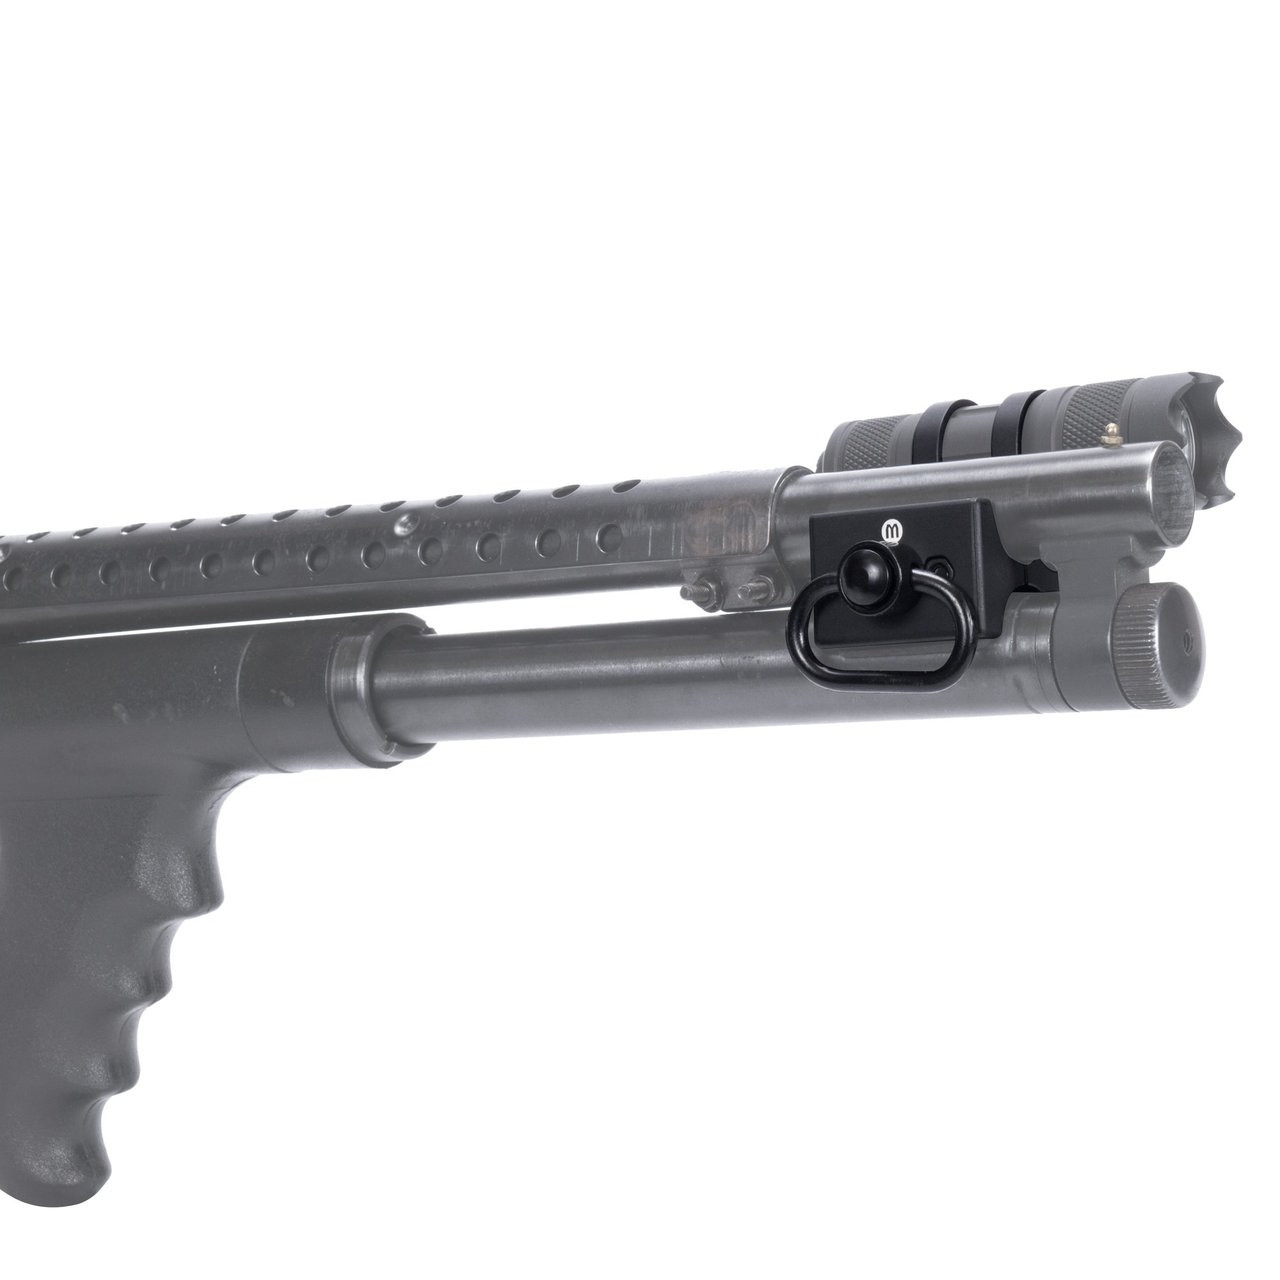 Mossberg 500 Shotgun upgrades Tactical Weaver Rail Scope Mount aluminum black.